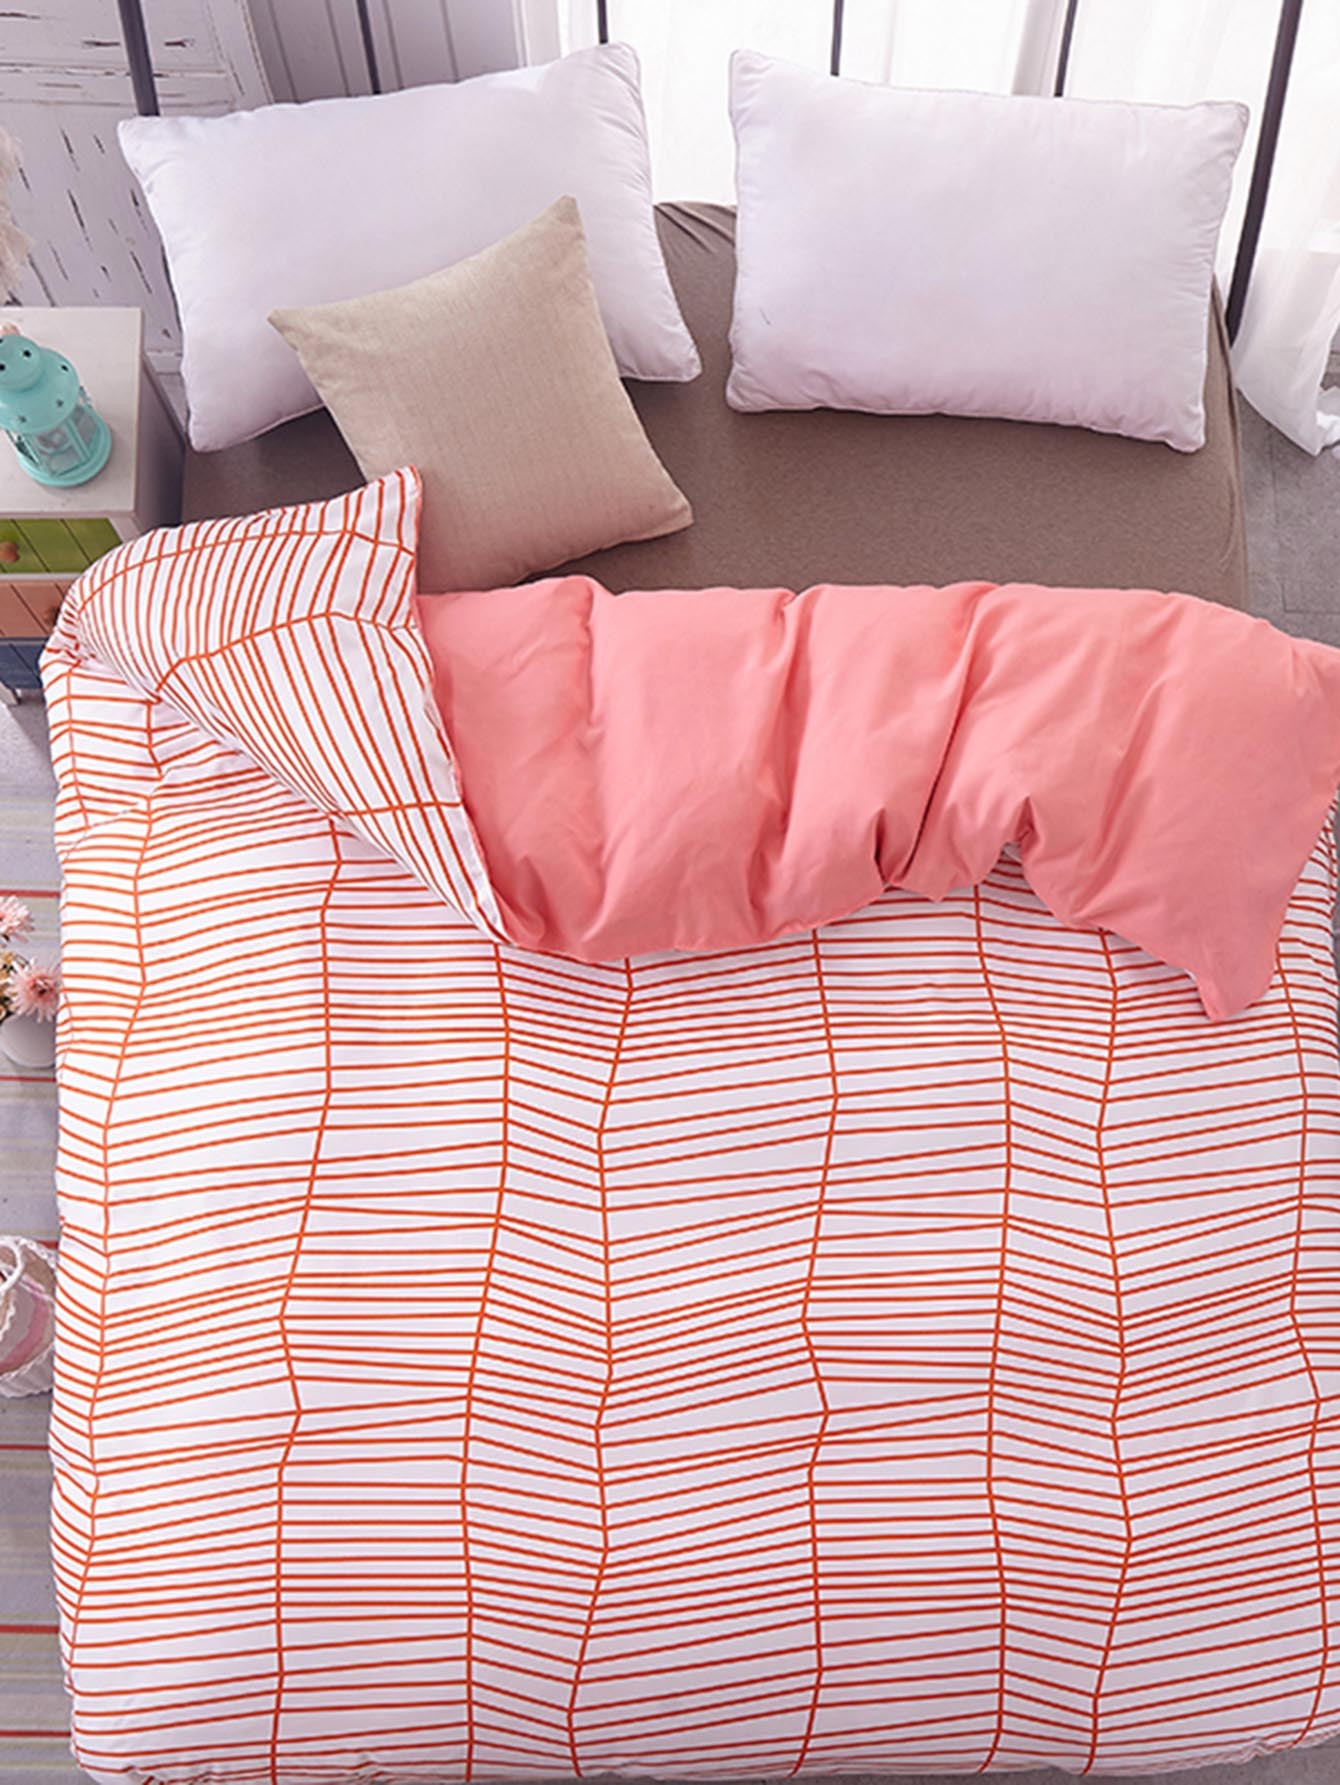 Asymmetrical Striped Duvet Cover Set planned preemptive vs delayed reactive focus on form